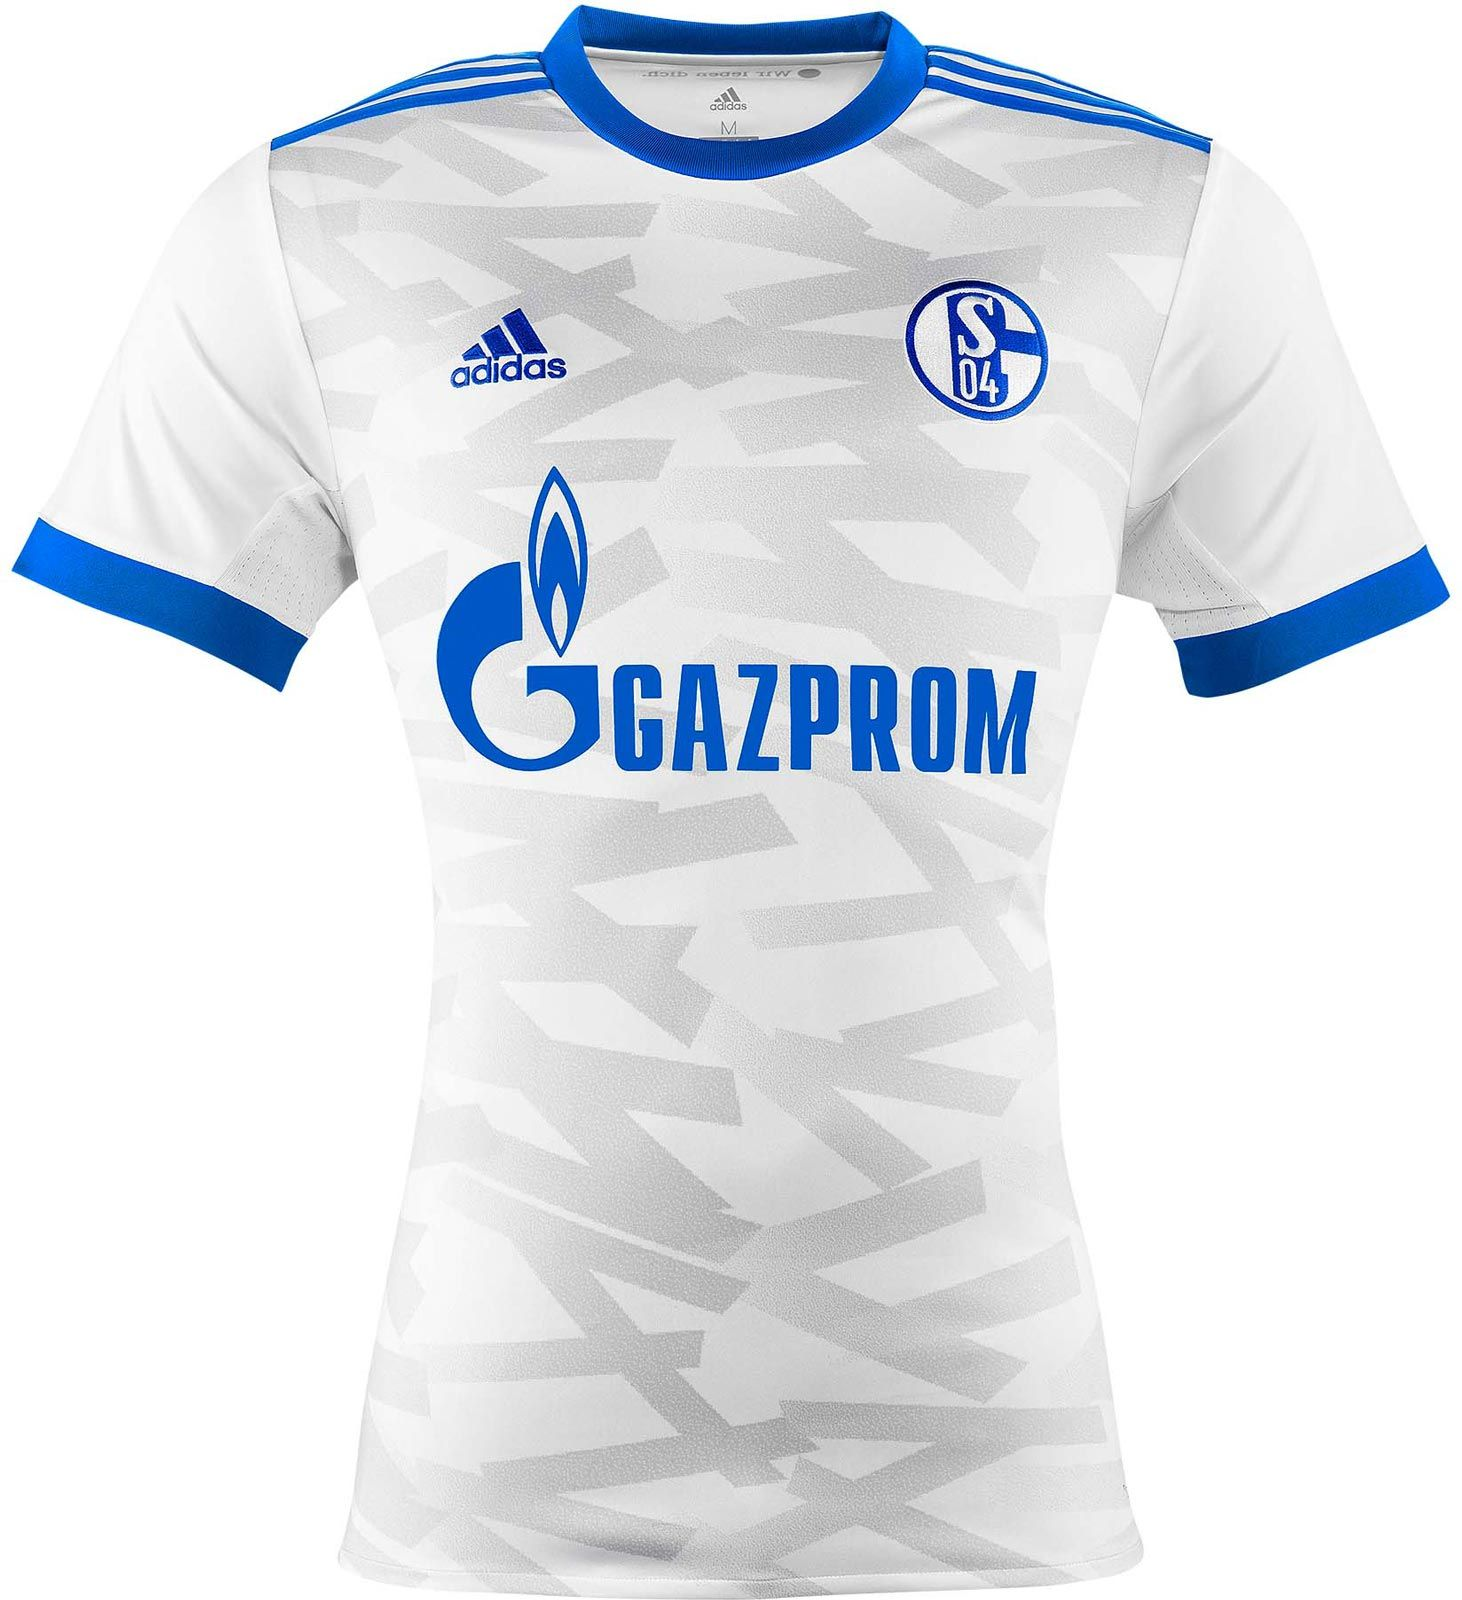 The Schalke away kit introduces a clean look that draws inspiration from  one of the most iconic jerseys in club history.